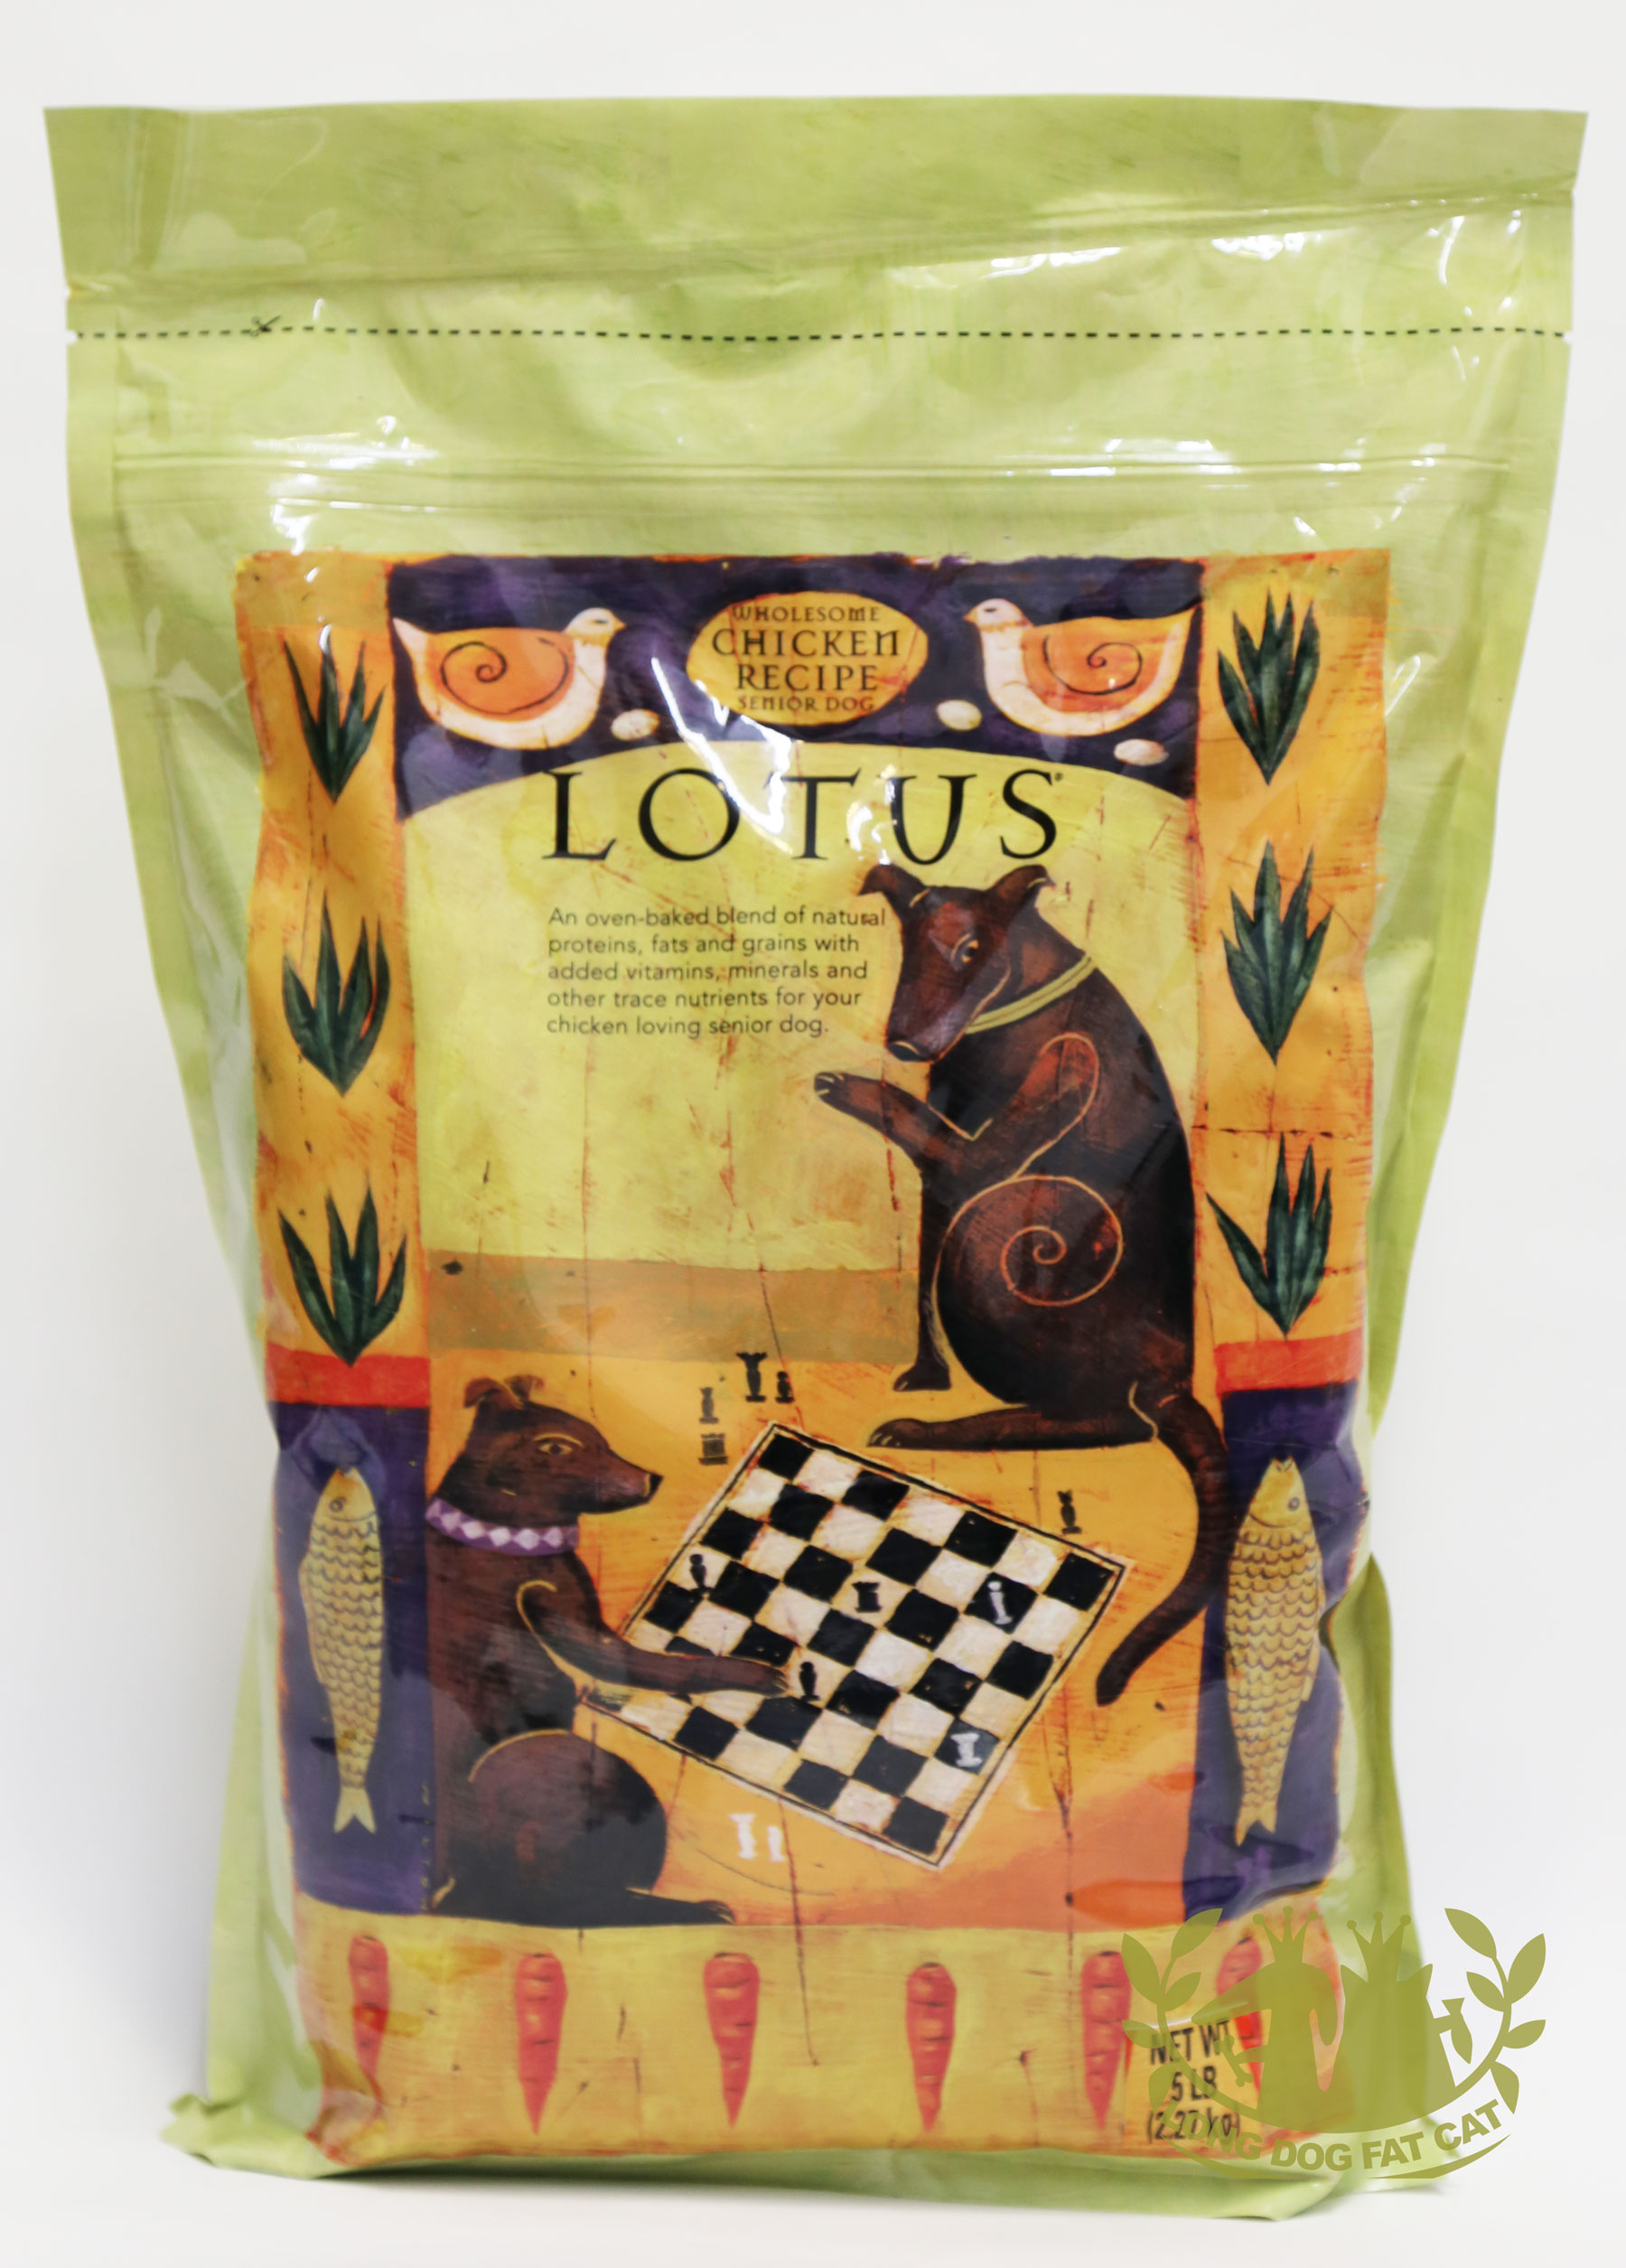 Lotus Canned Dog Food Review